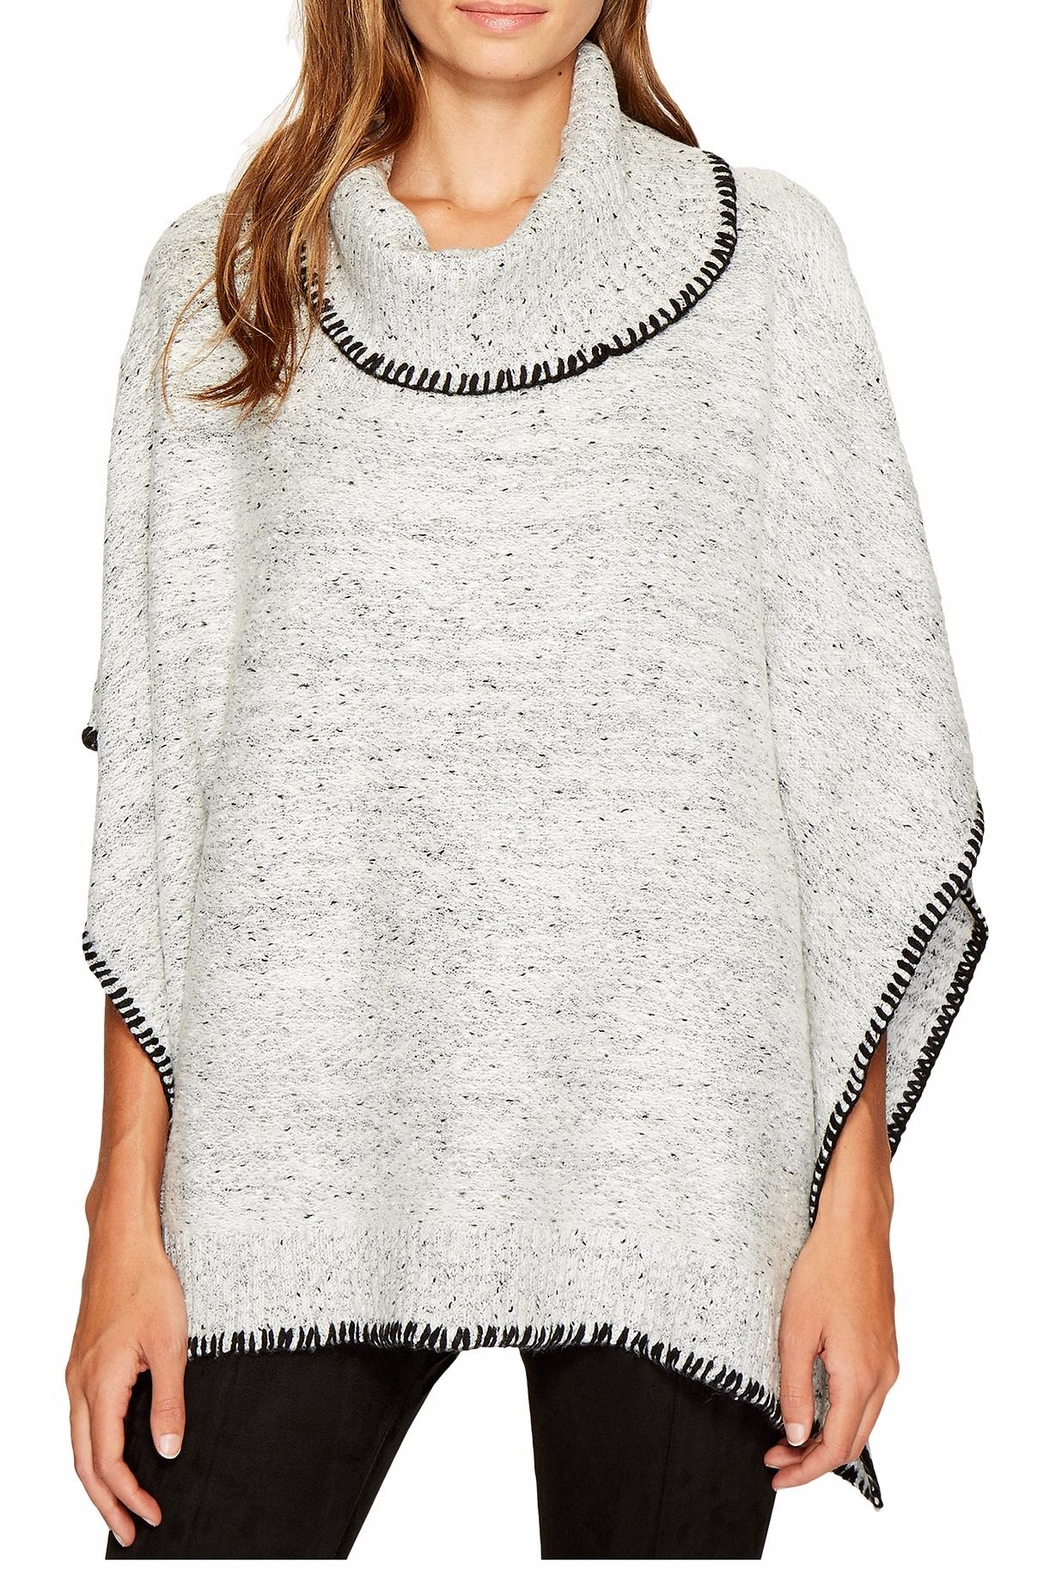 Bishop + Young Dolman Speckled Poncho - Main Image